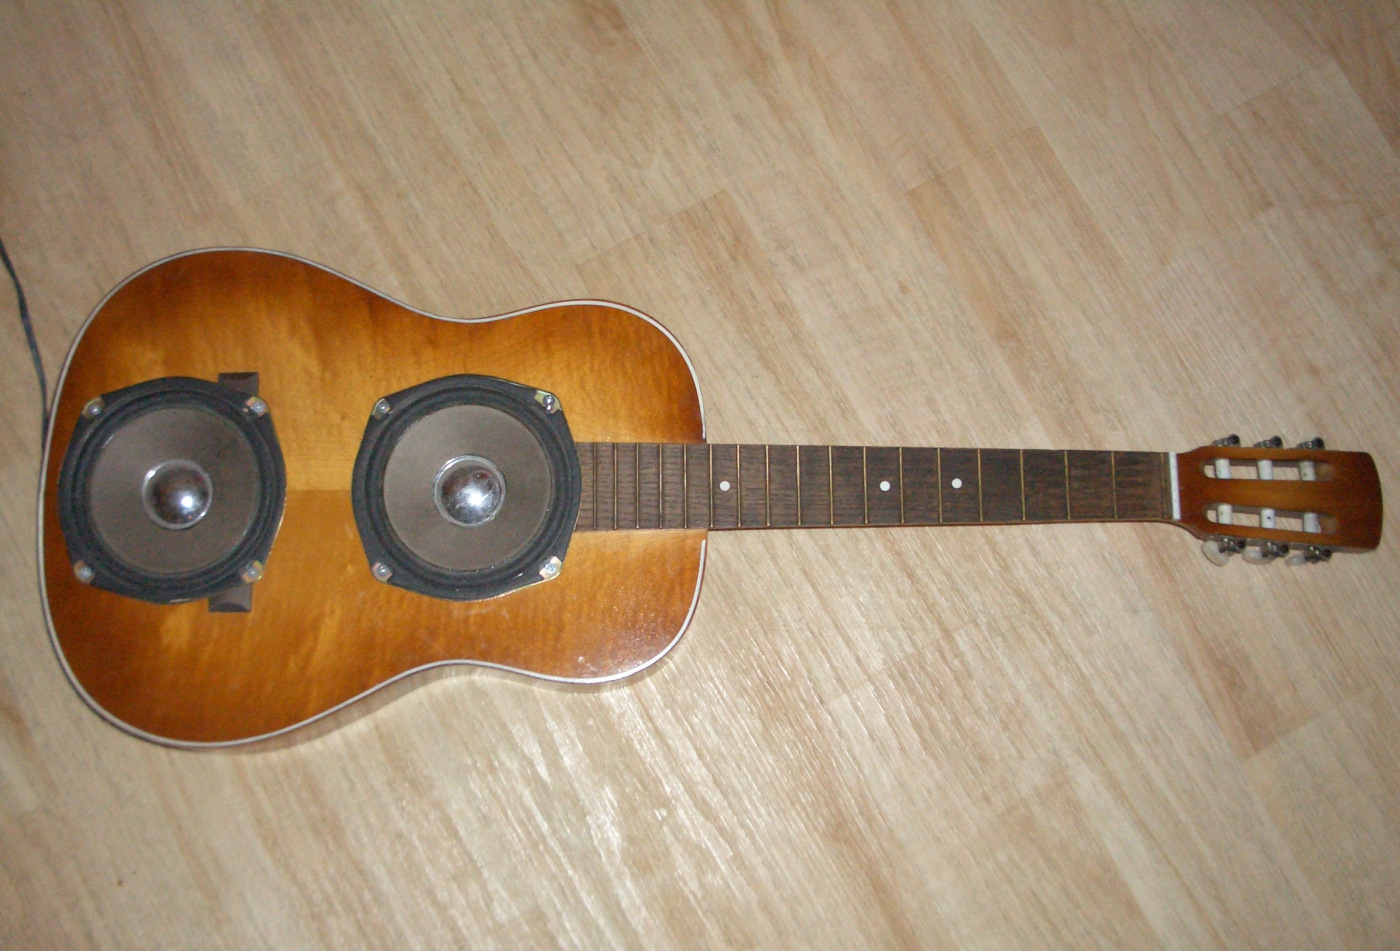 Repurpose your guitar. She deserves a second chance!